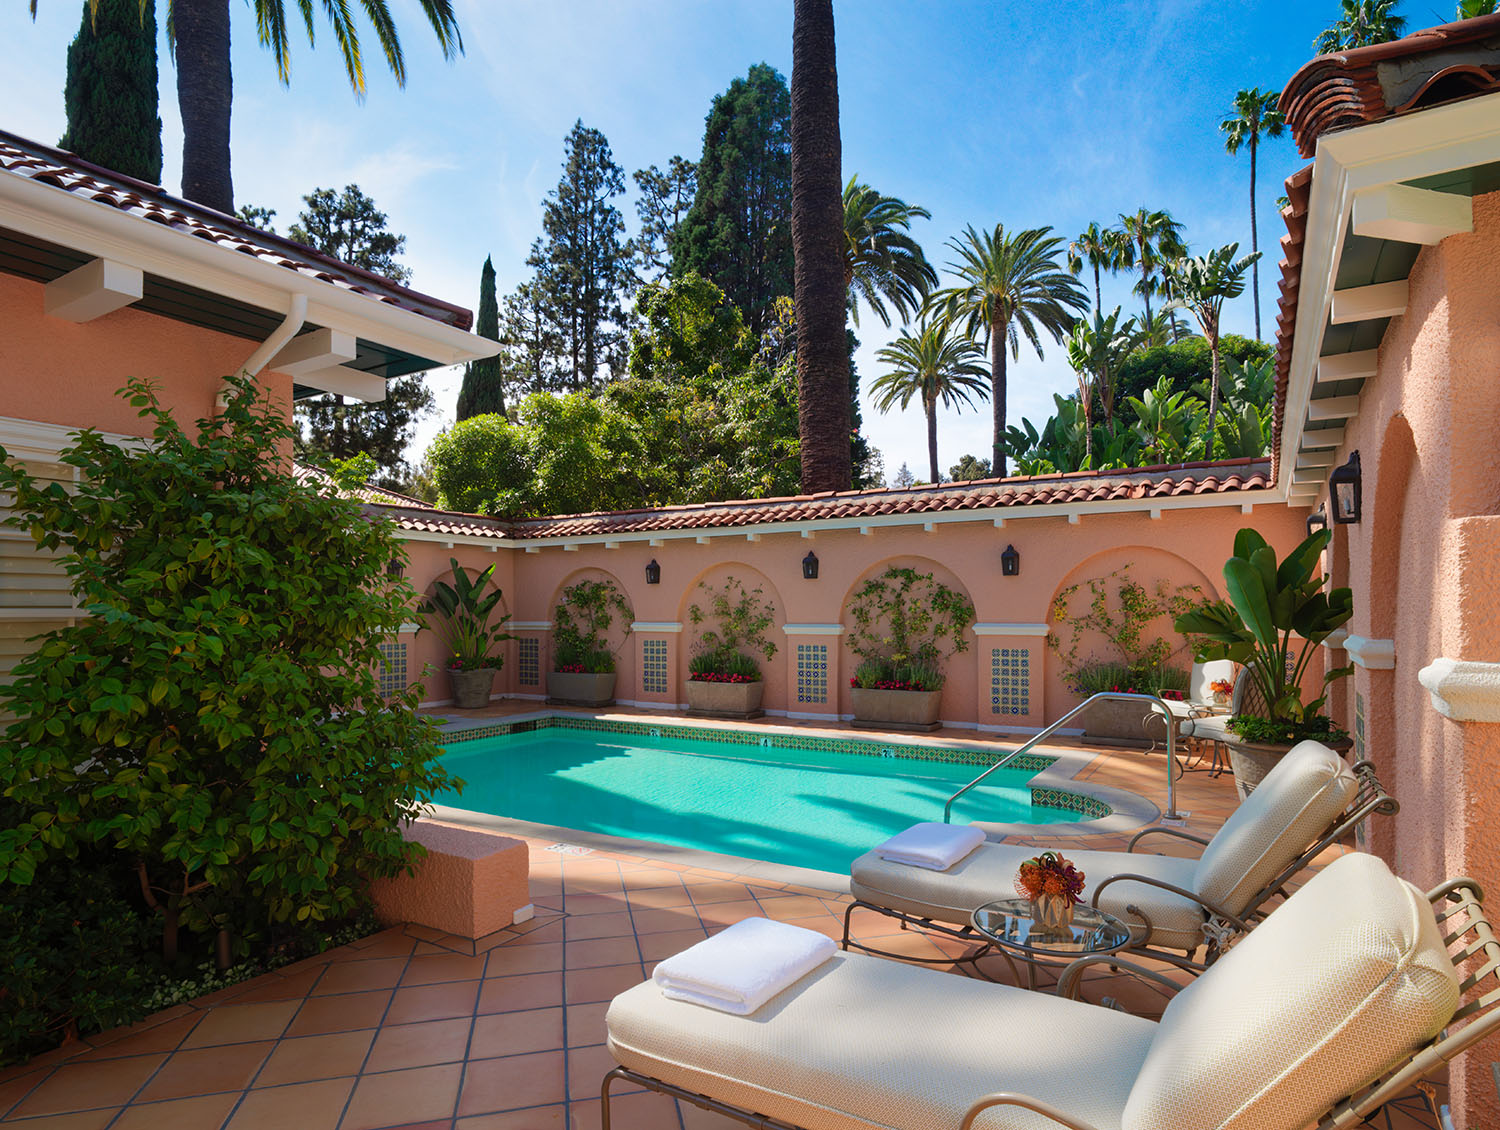 The bungalow includes a private outdoor pool, Jacuzzi, and large patio with outdoor seating.